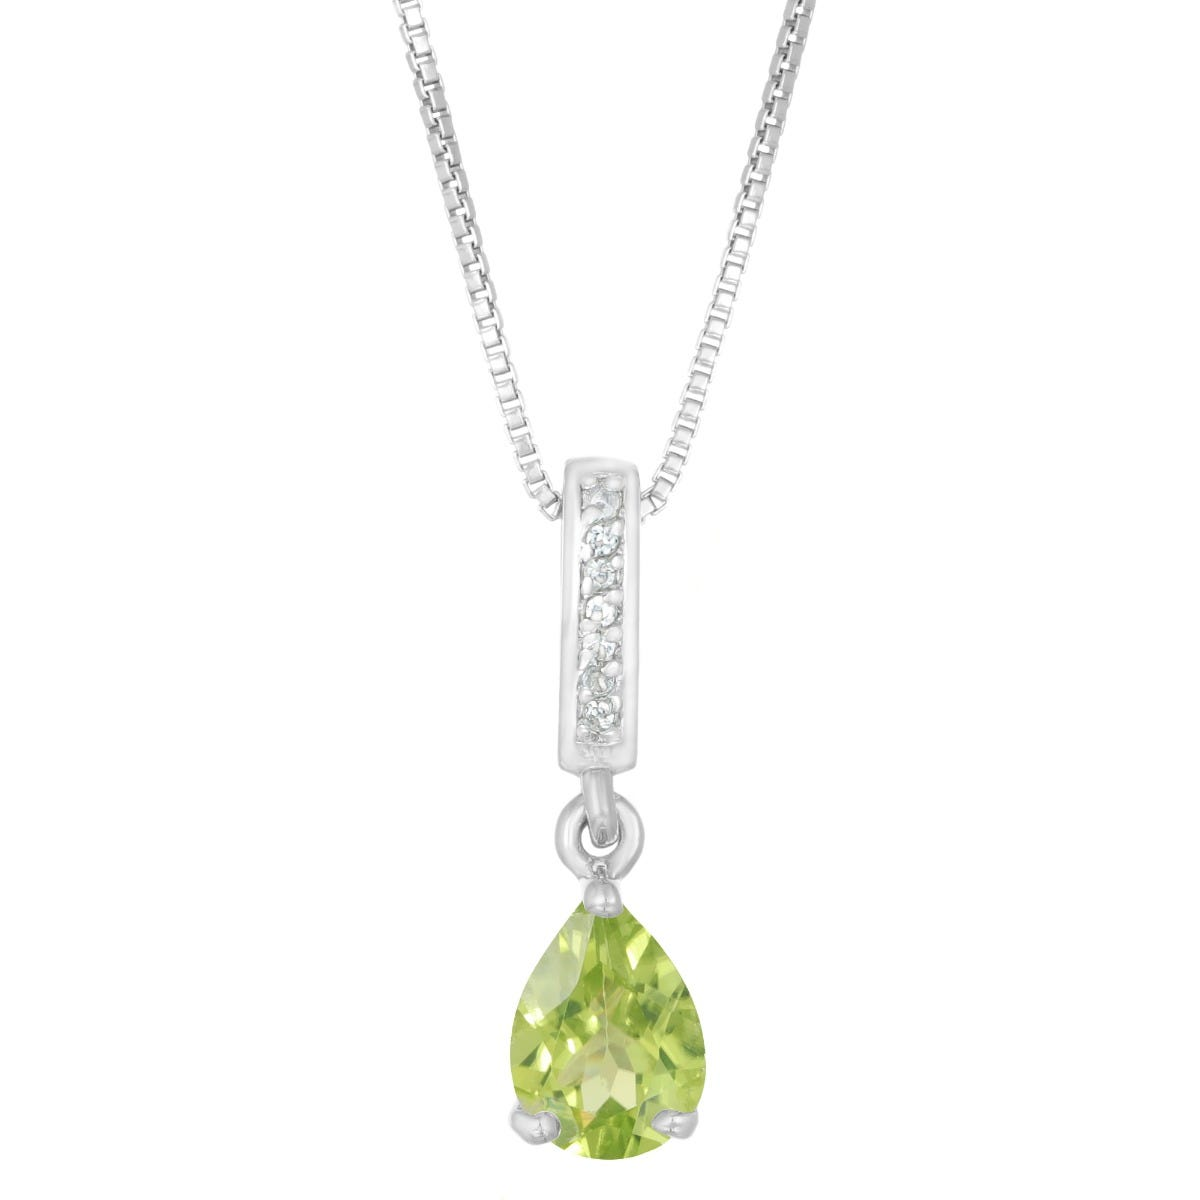 Pear Shaped Peridot & White Topaz Pendant in Sterling Silver